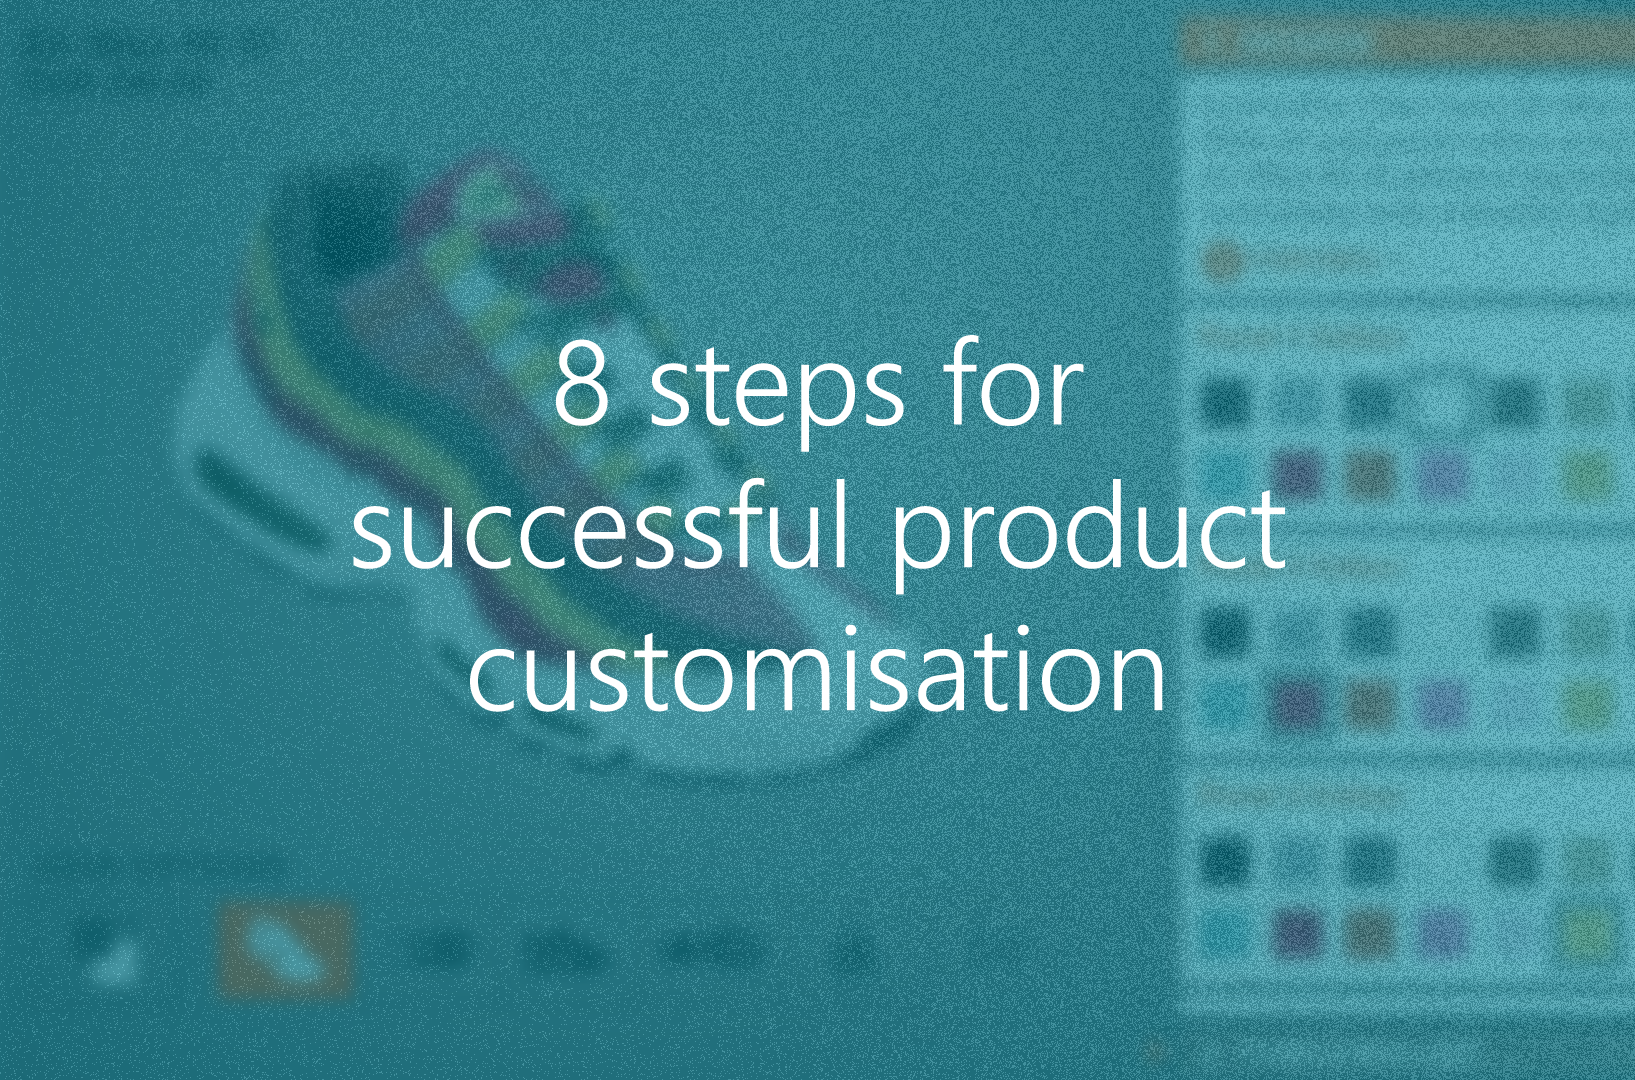 8-steps-for-product-customisation.png